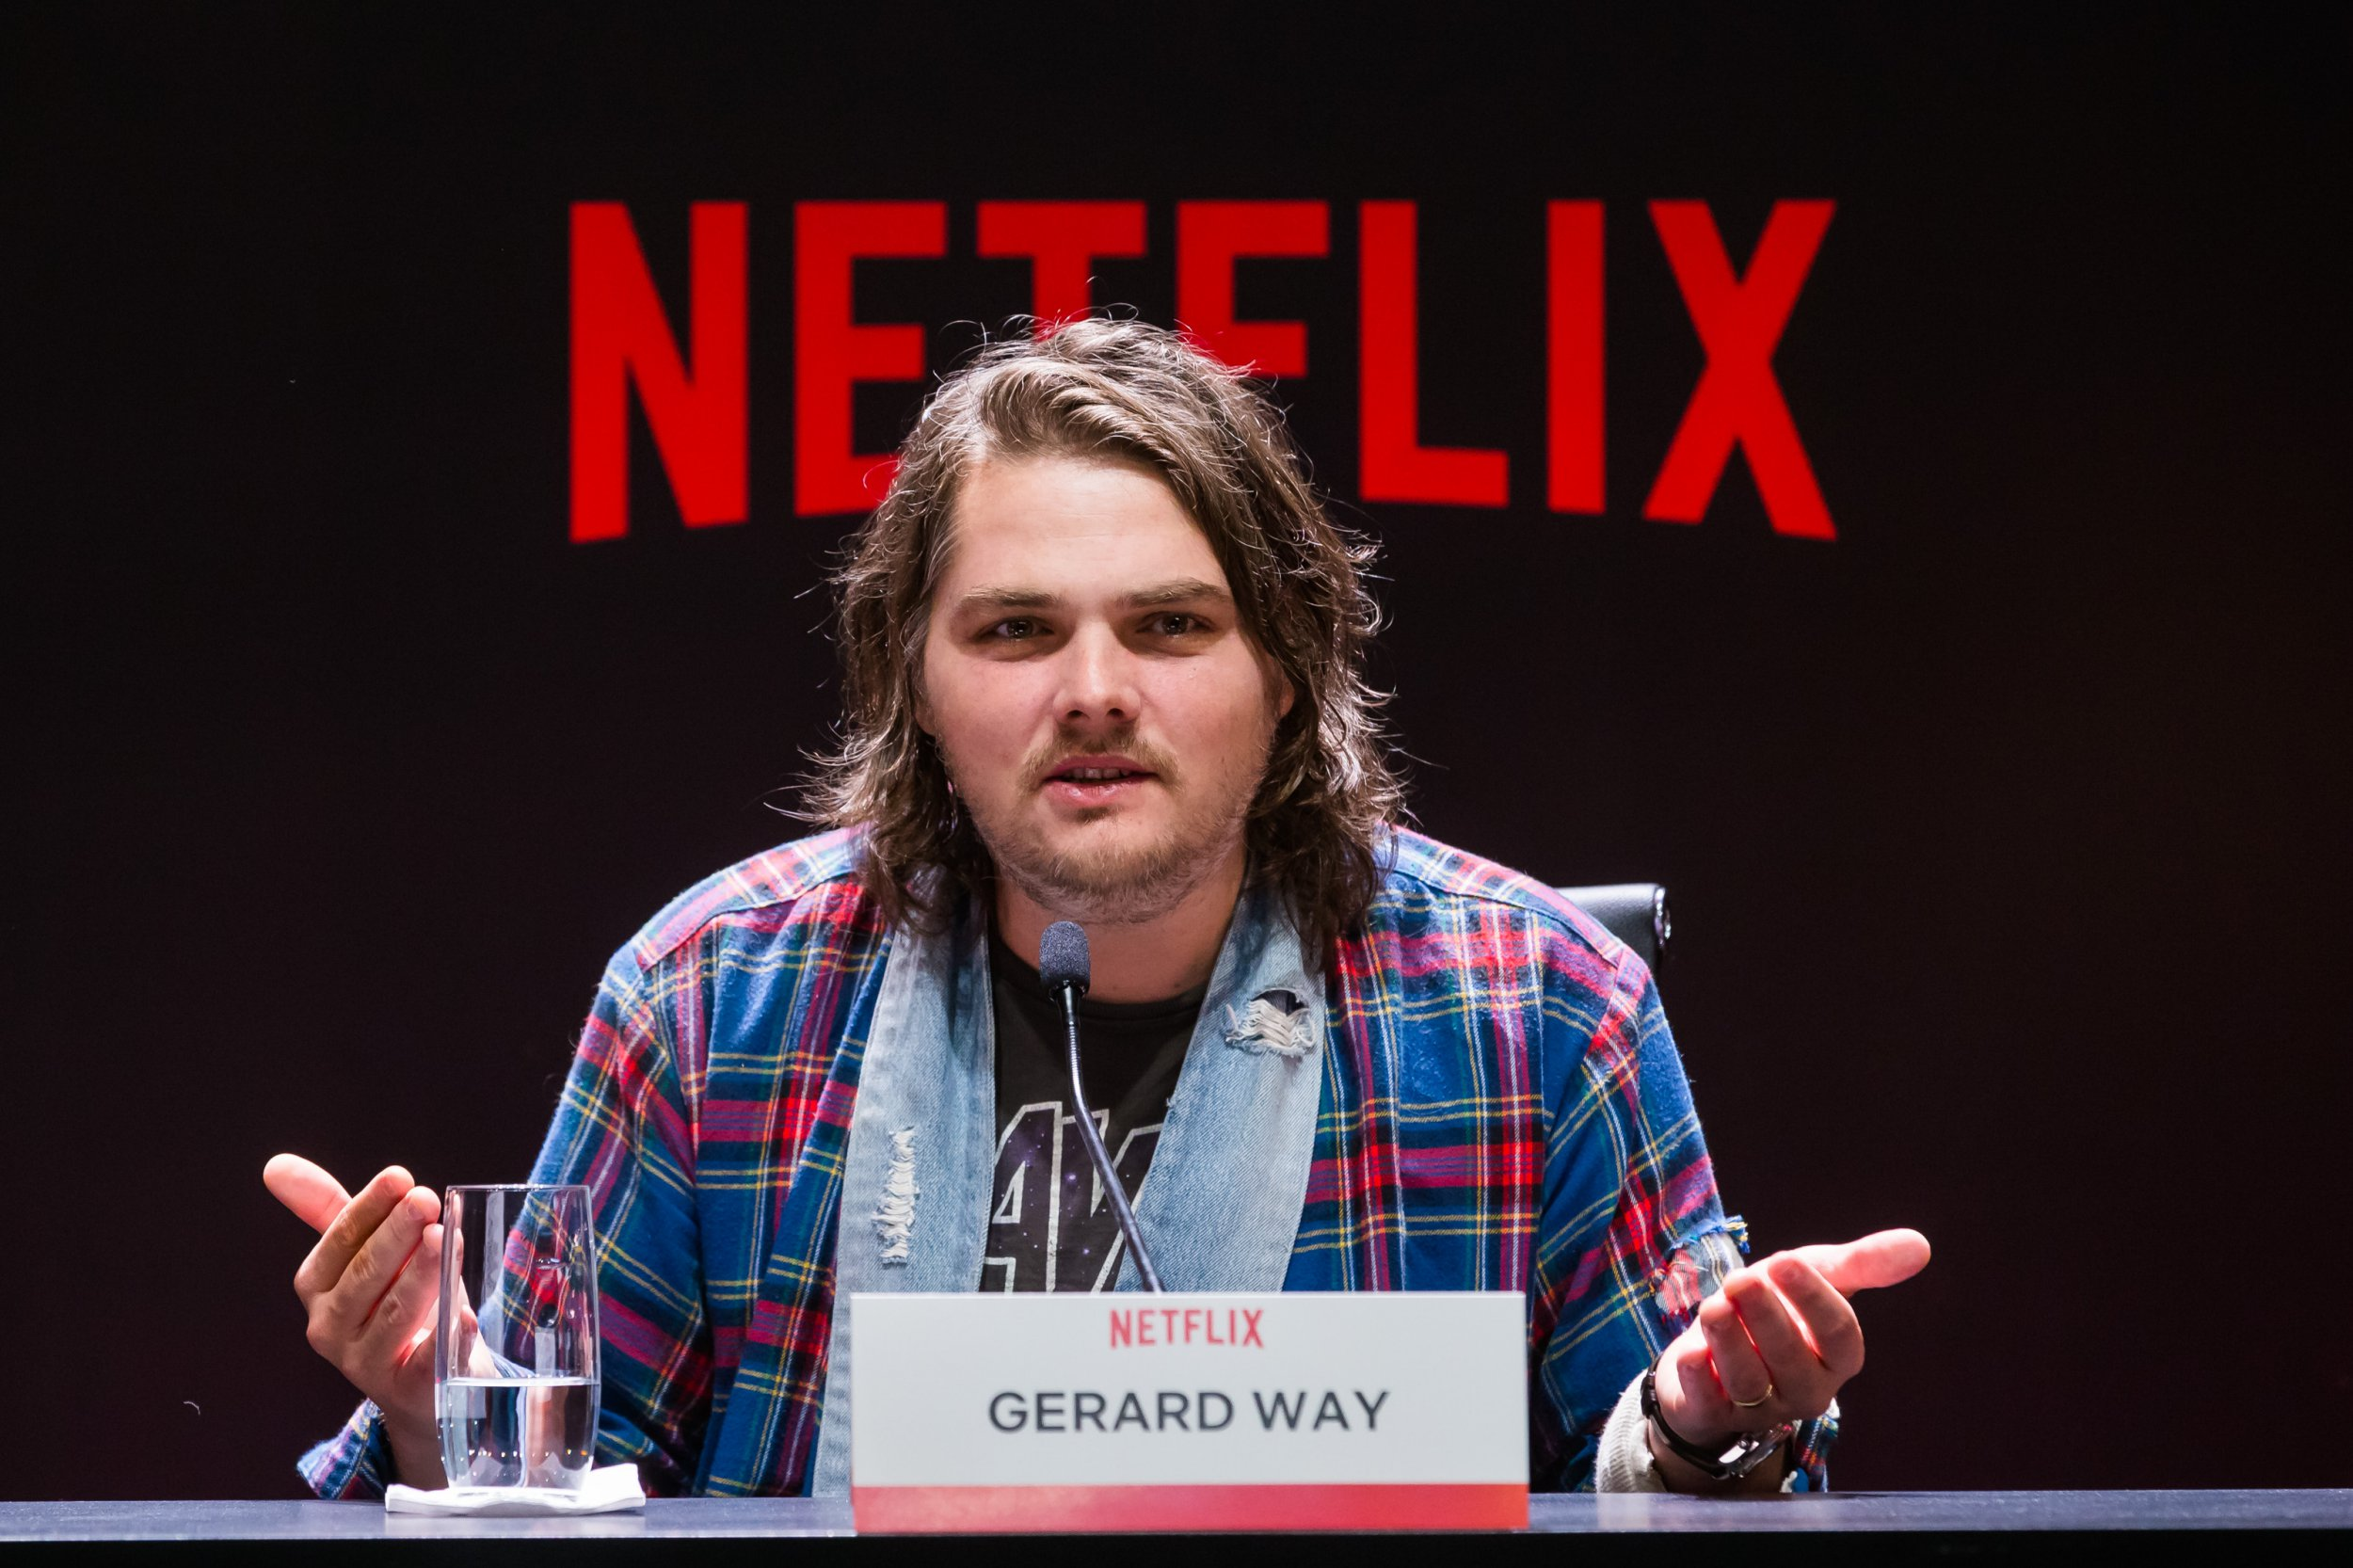 Who is Gerard Way, who wrote The Umbrella Academy comic books?